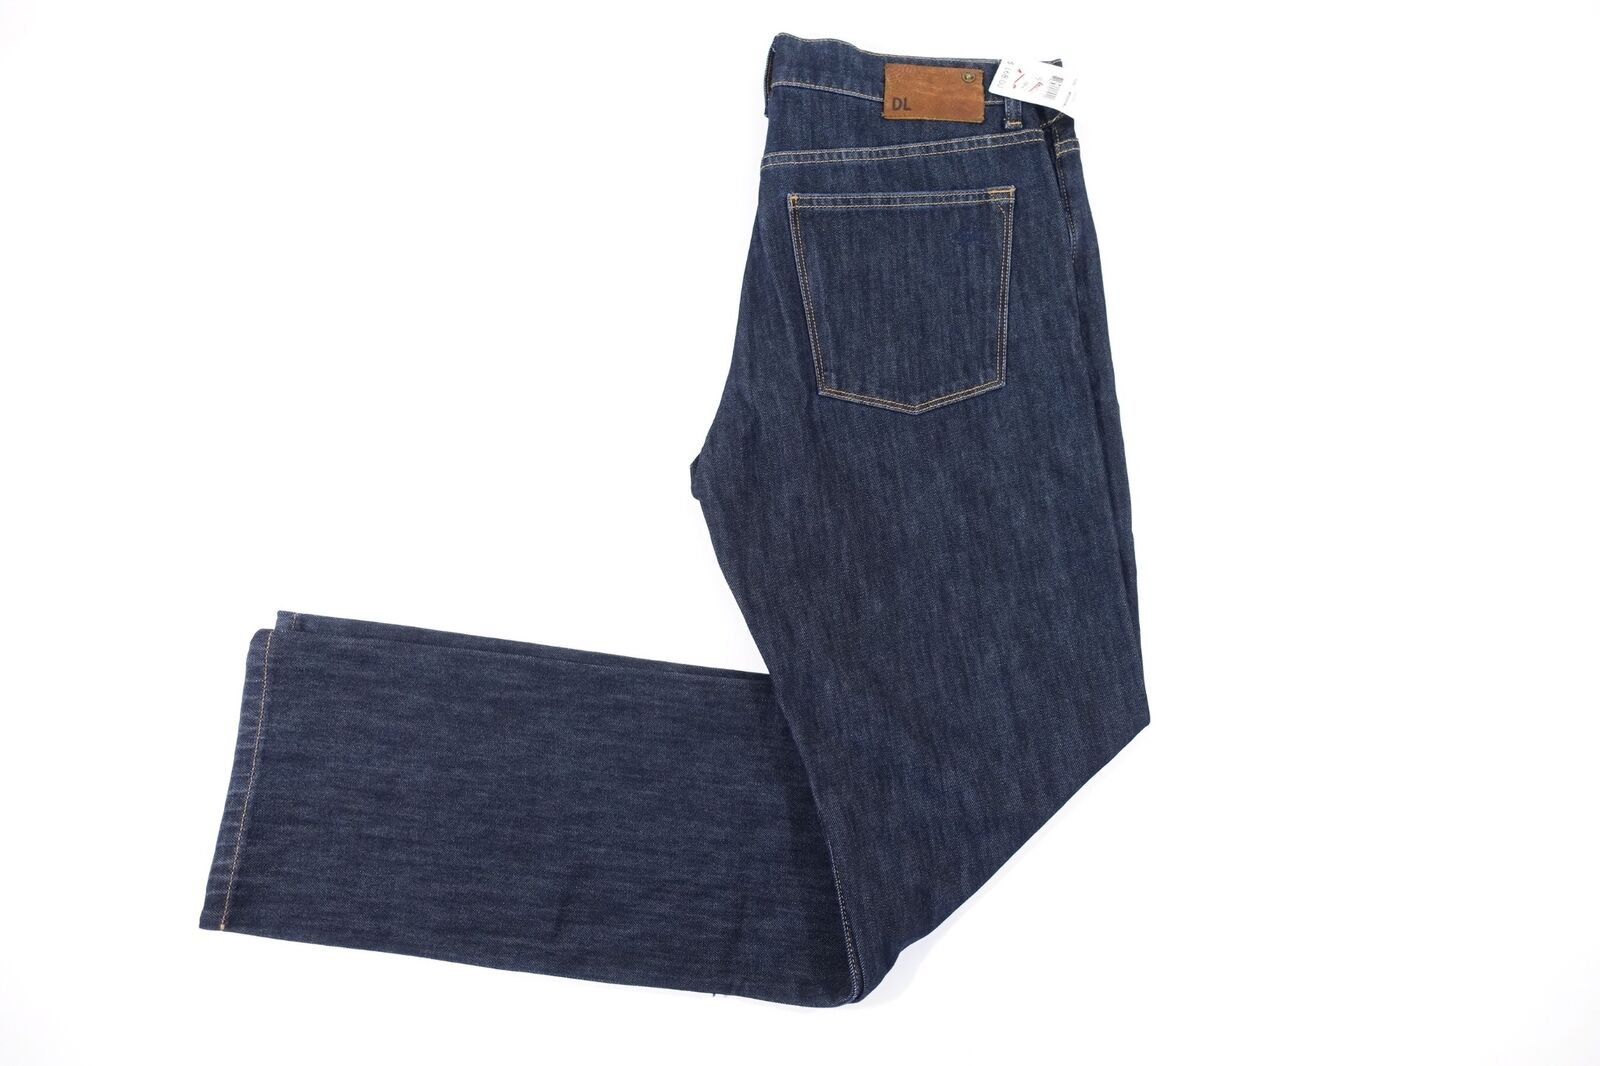 DL 1961 DARK blueE 30 VINCE 360 COMFORT STRAIGHT JEANS MENS NWT NEW